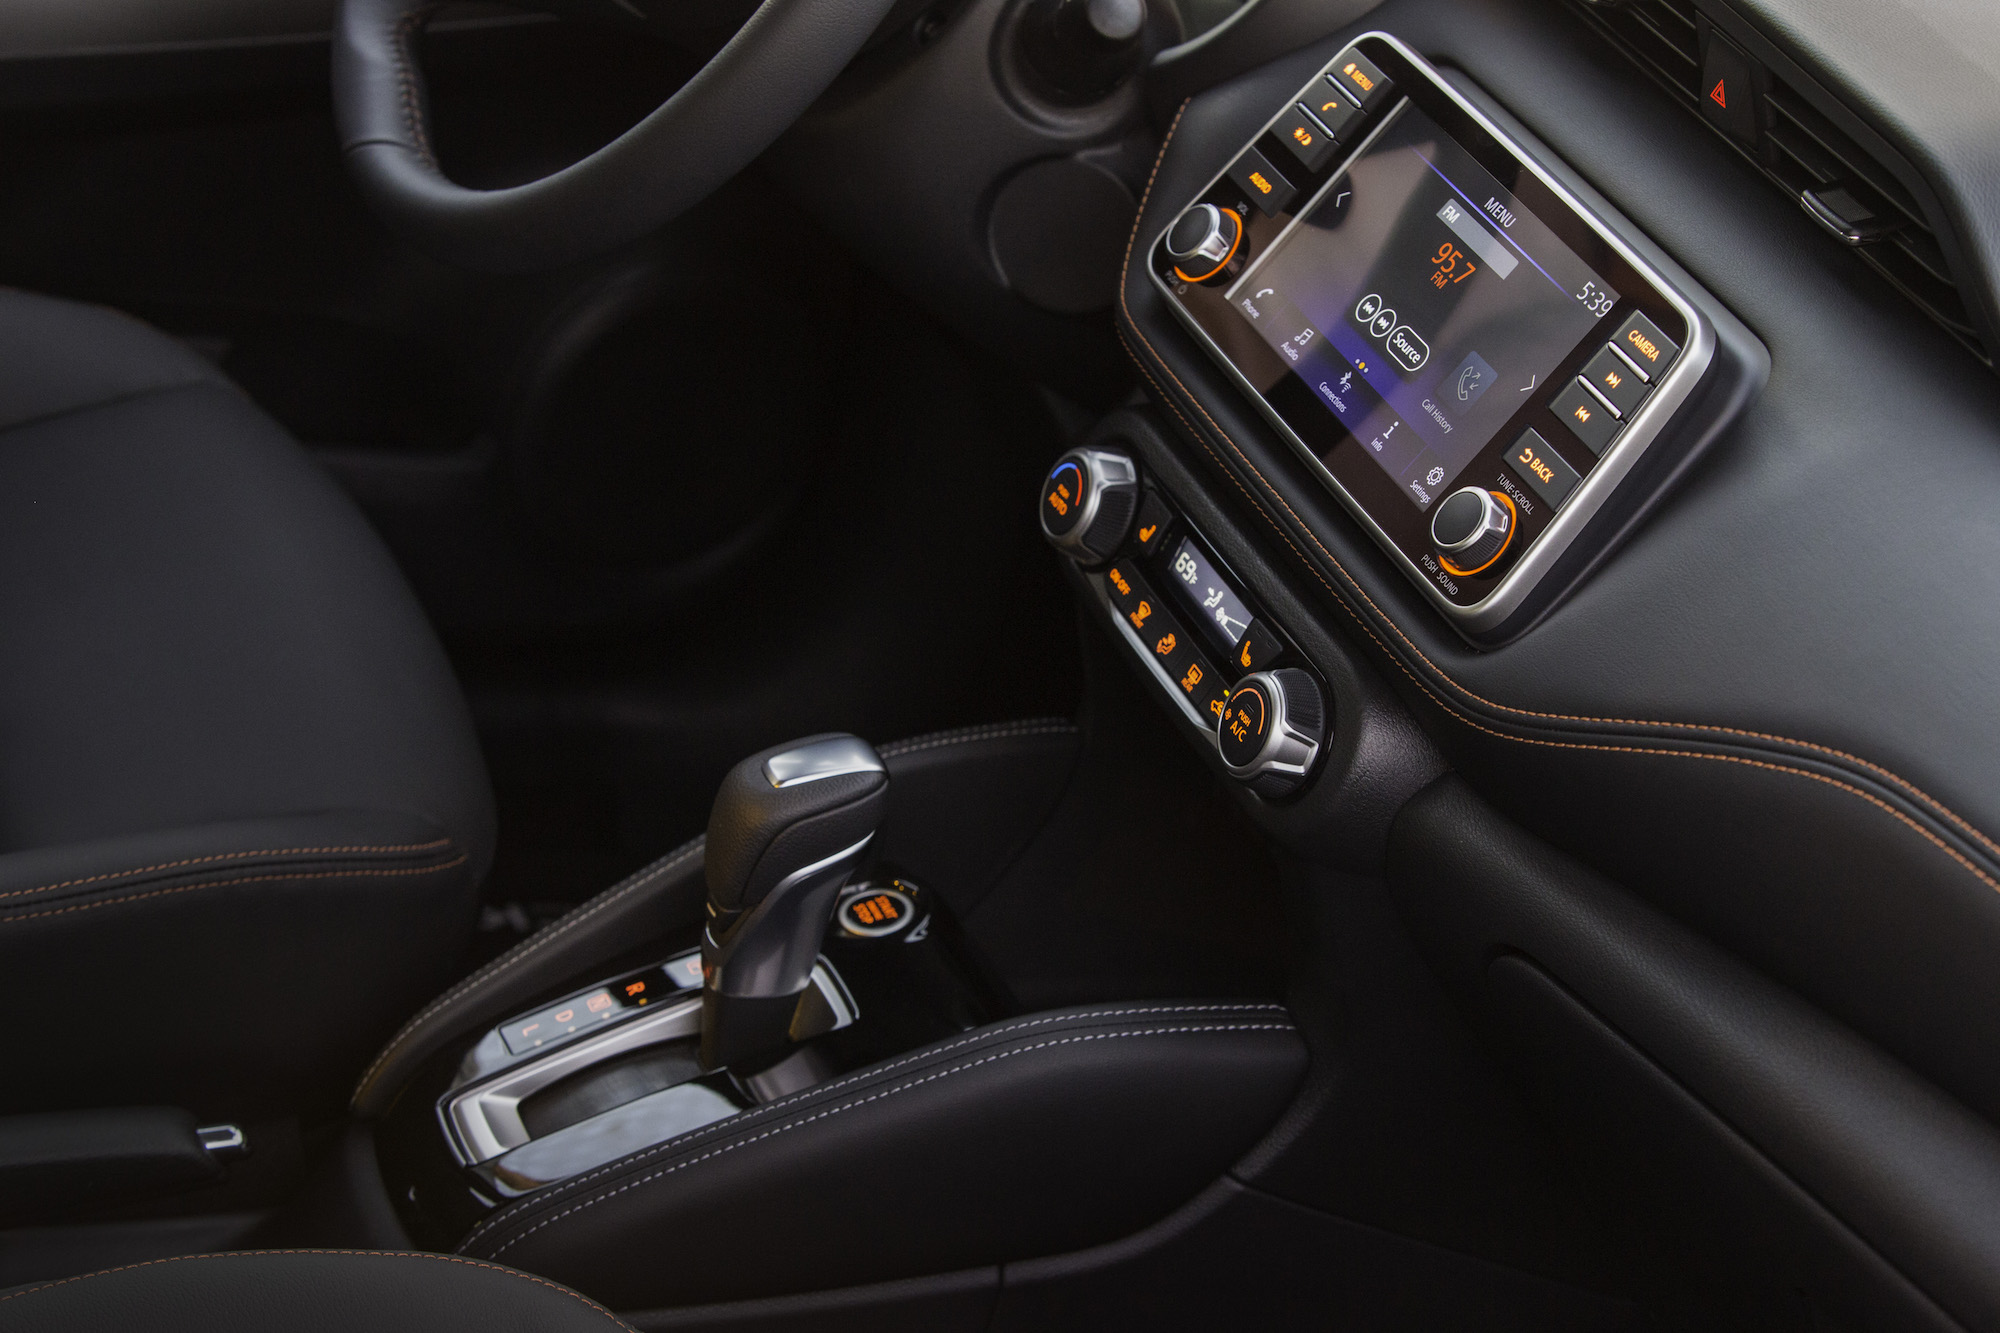 2018 Nissan KICKS Interior 3